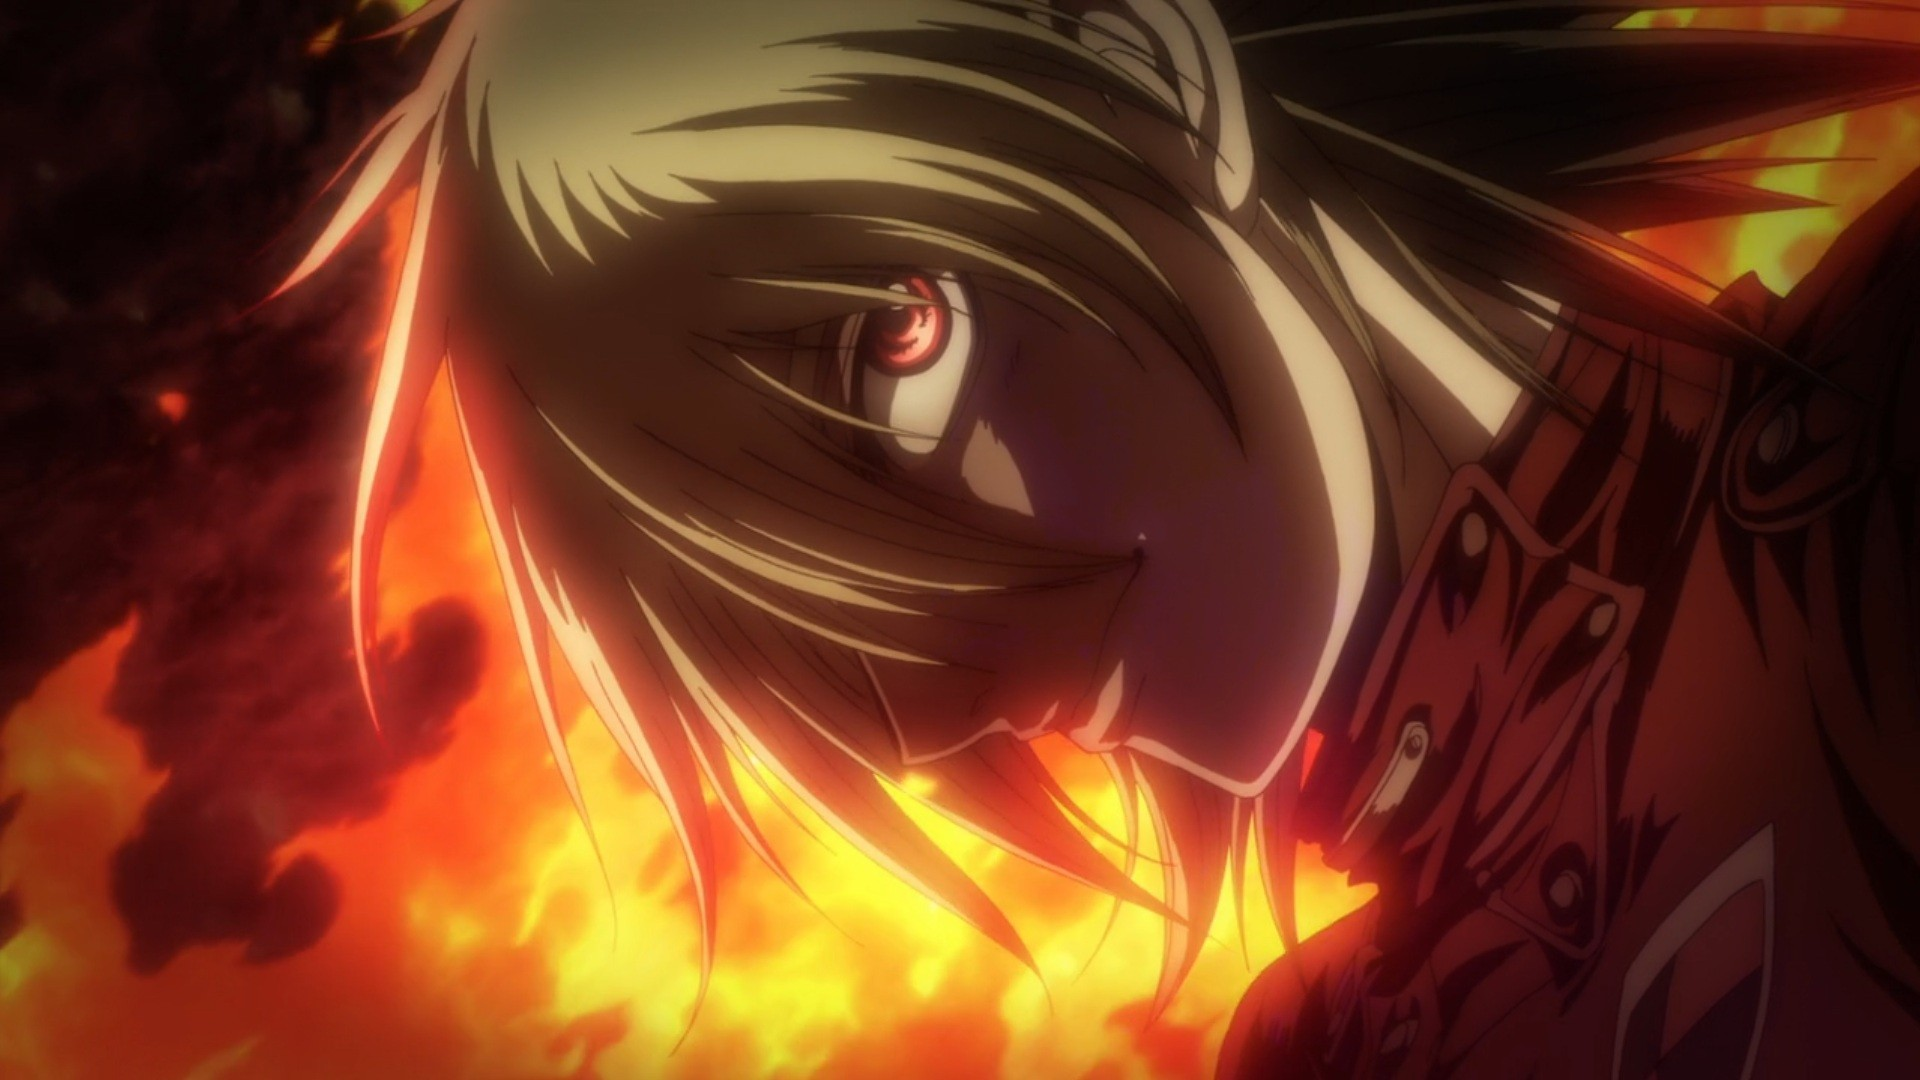 Seras Victoria Hellsing Ultimate Wallpapers 1920x1080